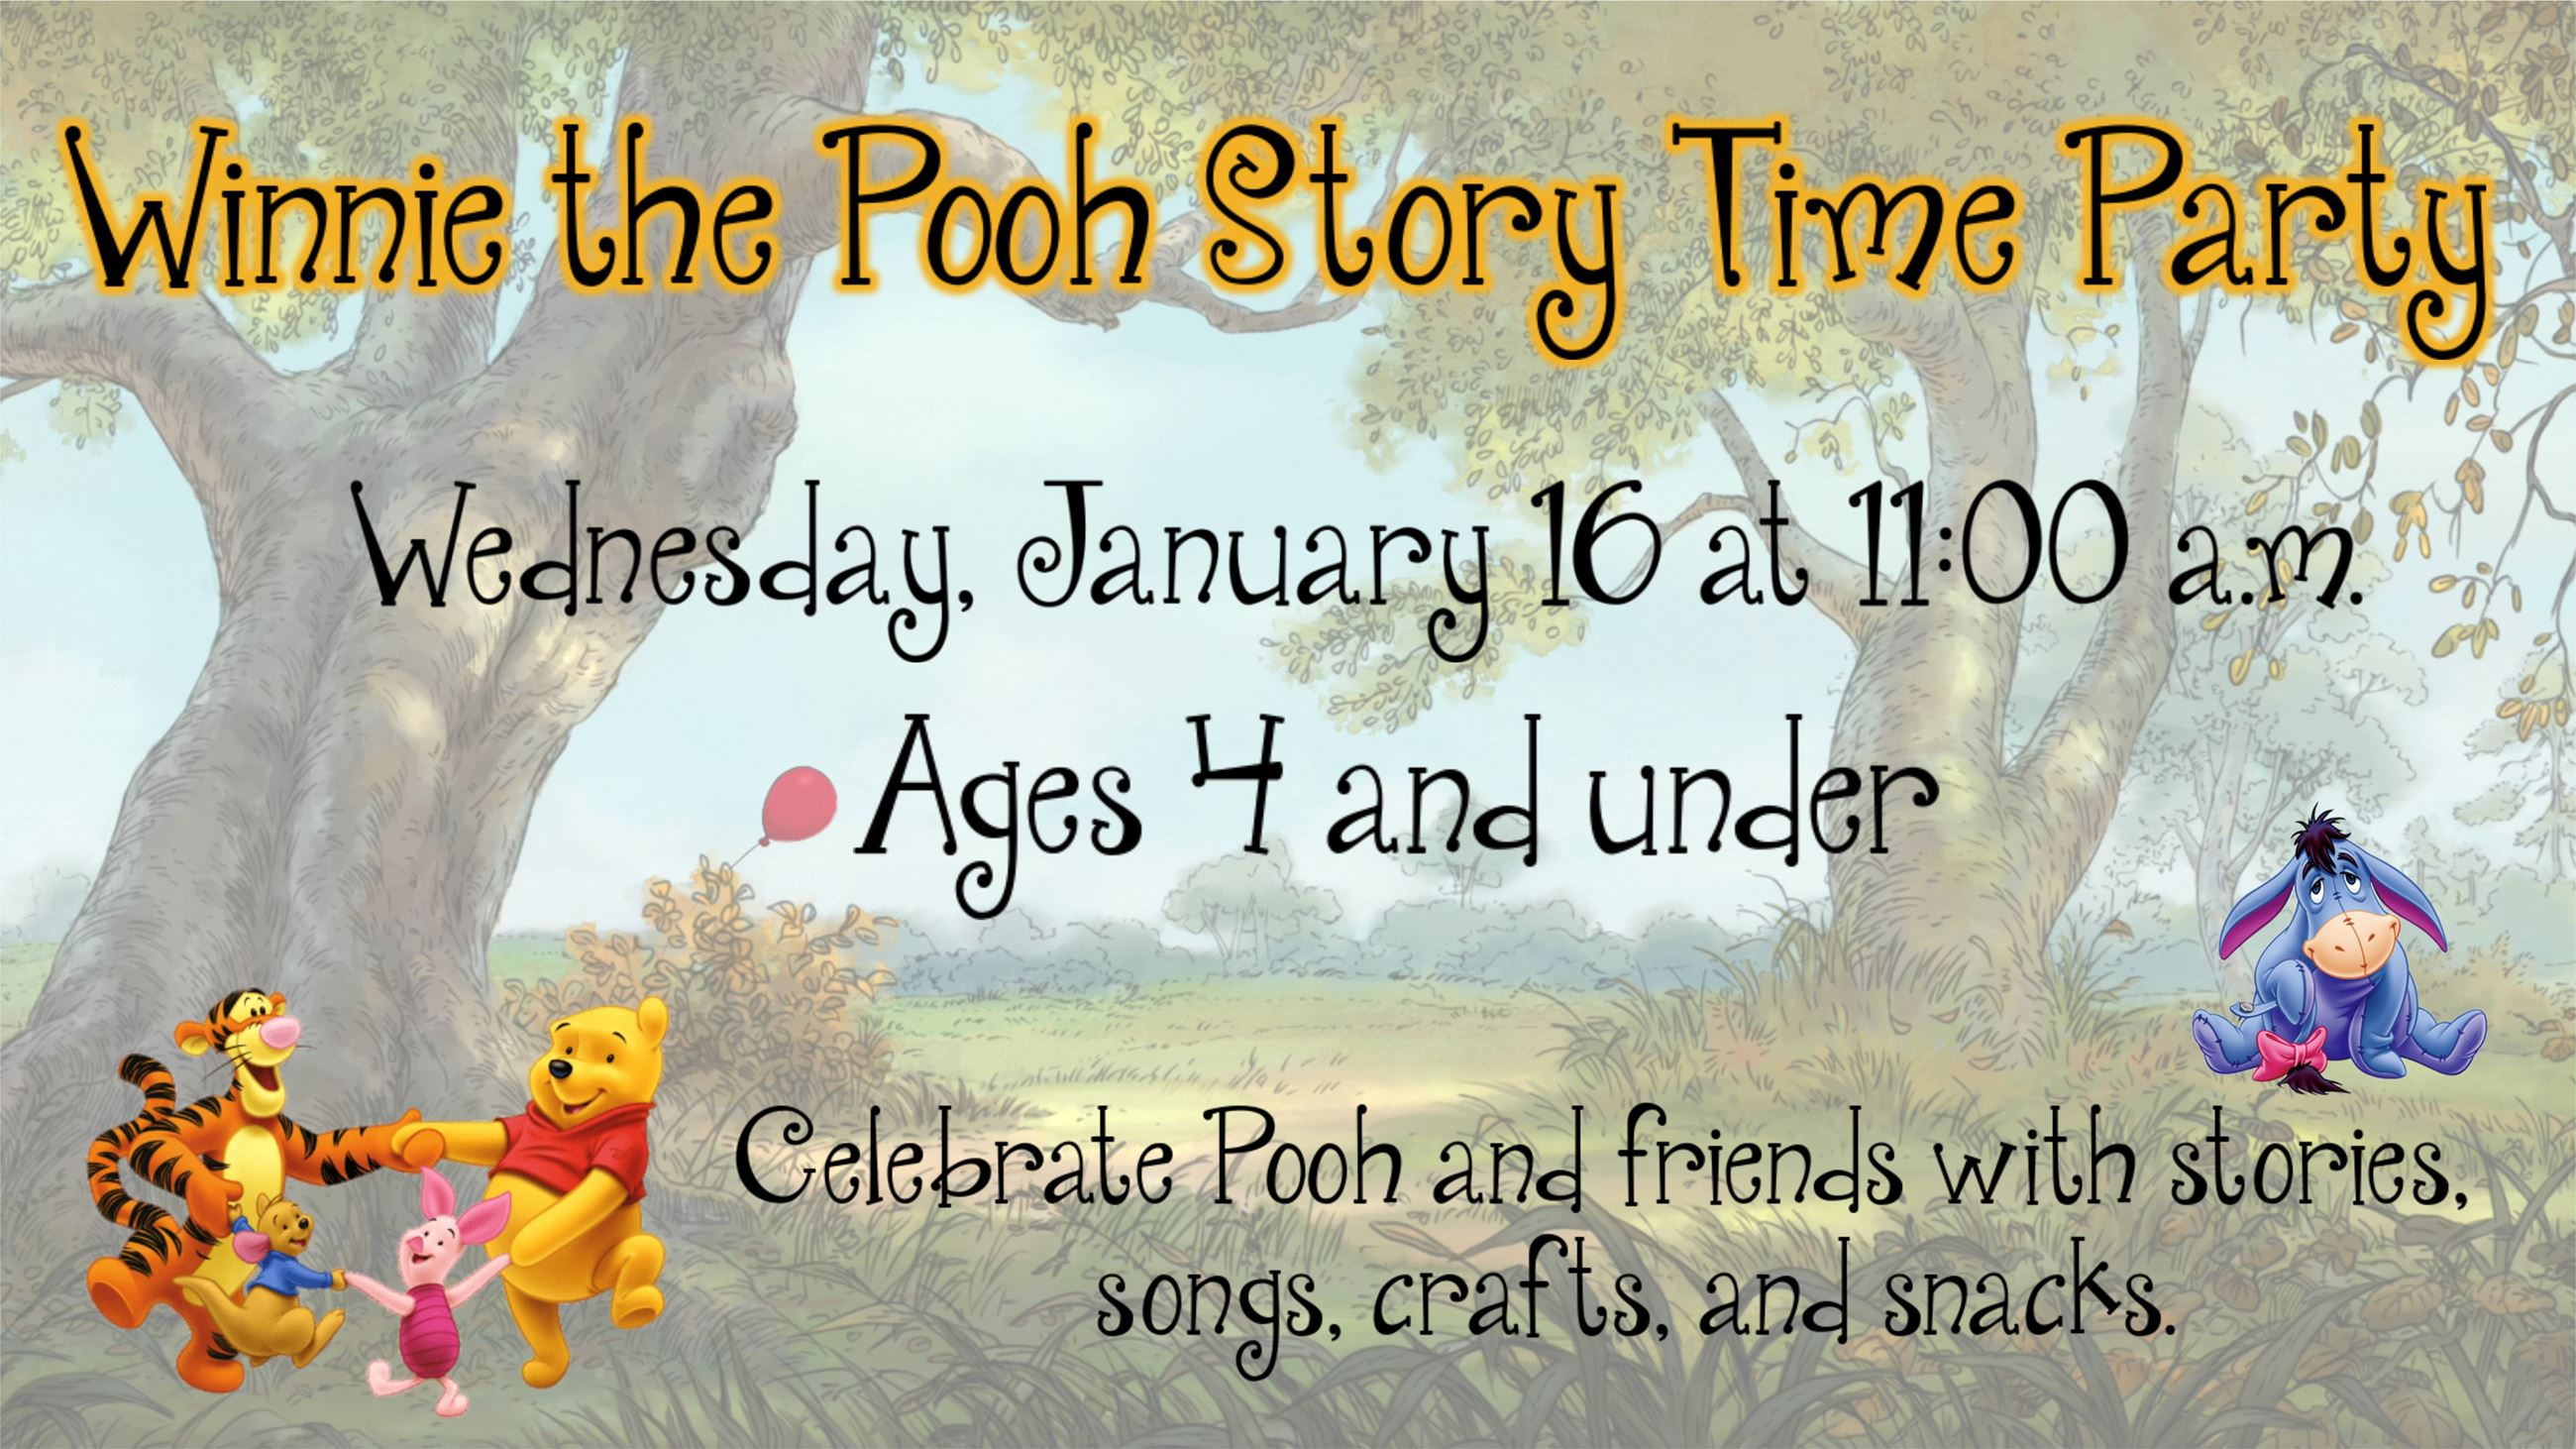 Winnie the Pooh Story Time Party. January 16 at 11 a.m. Ages 4 & under.